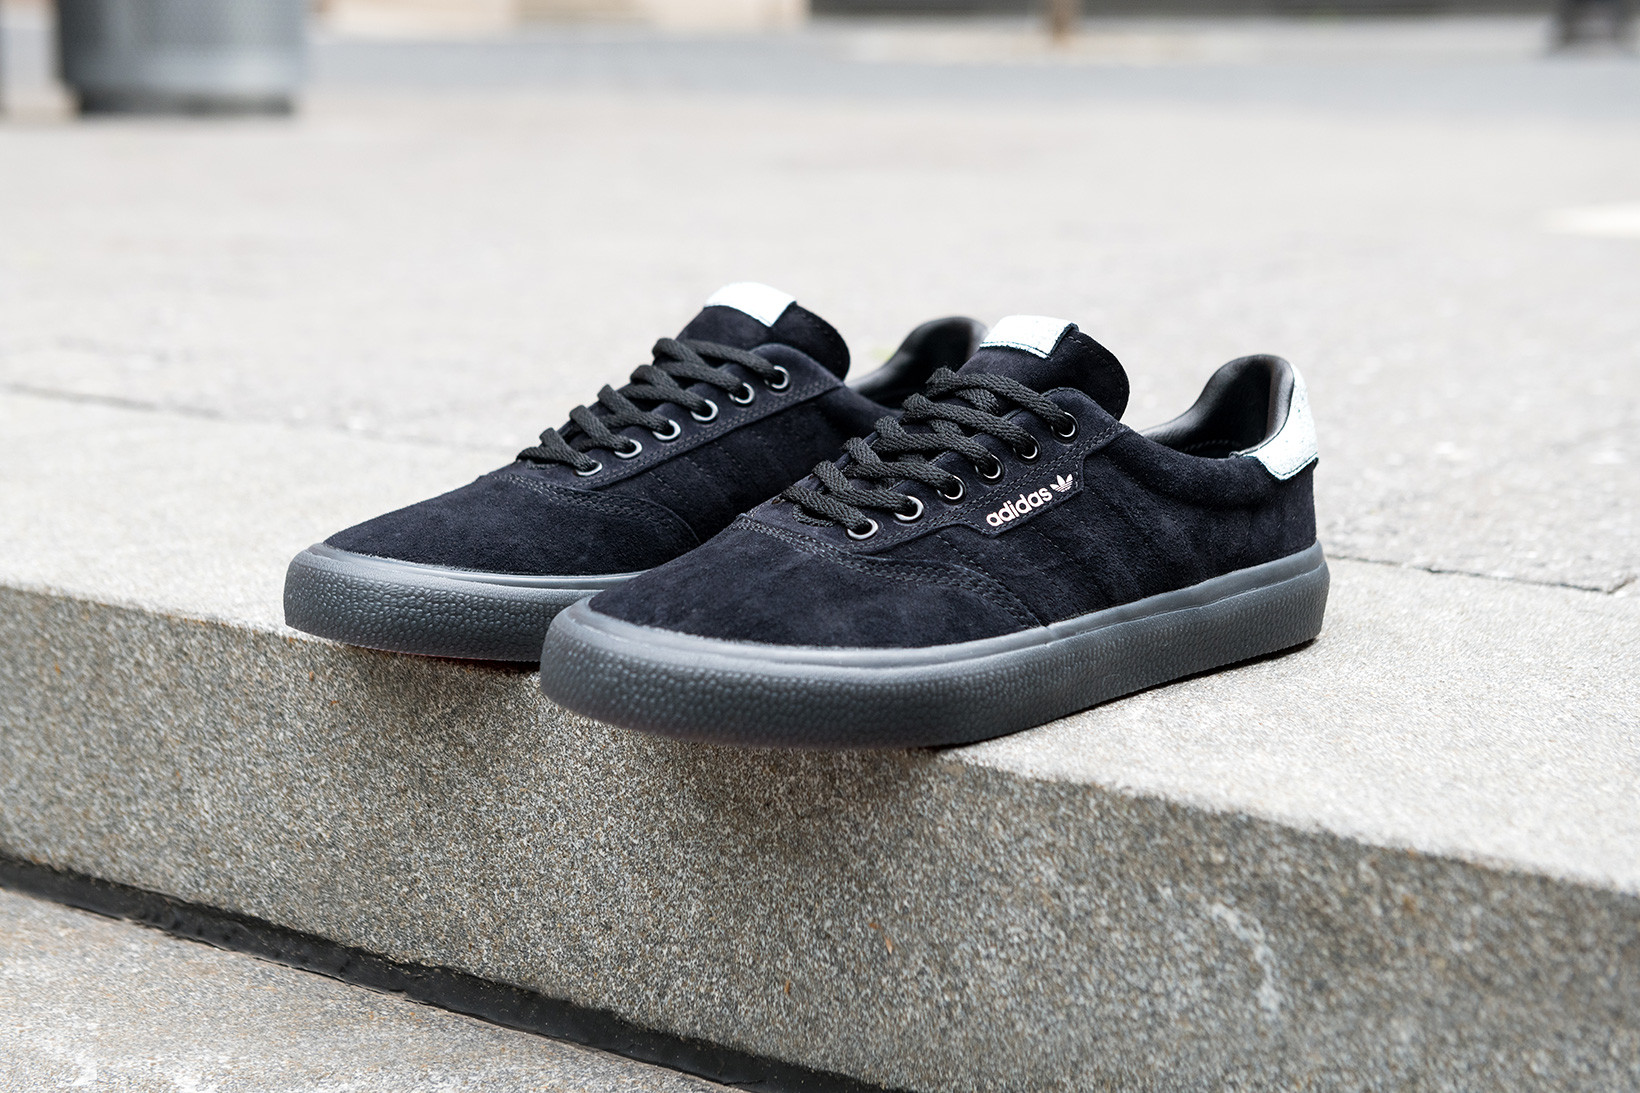 adidas rubber shoes 2018